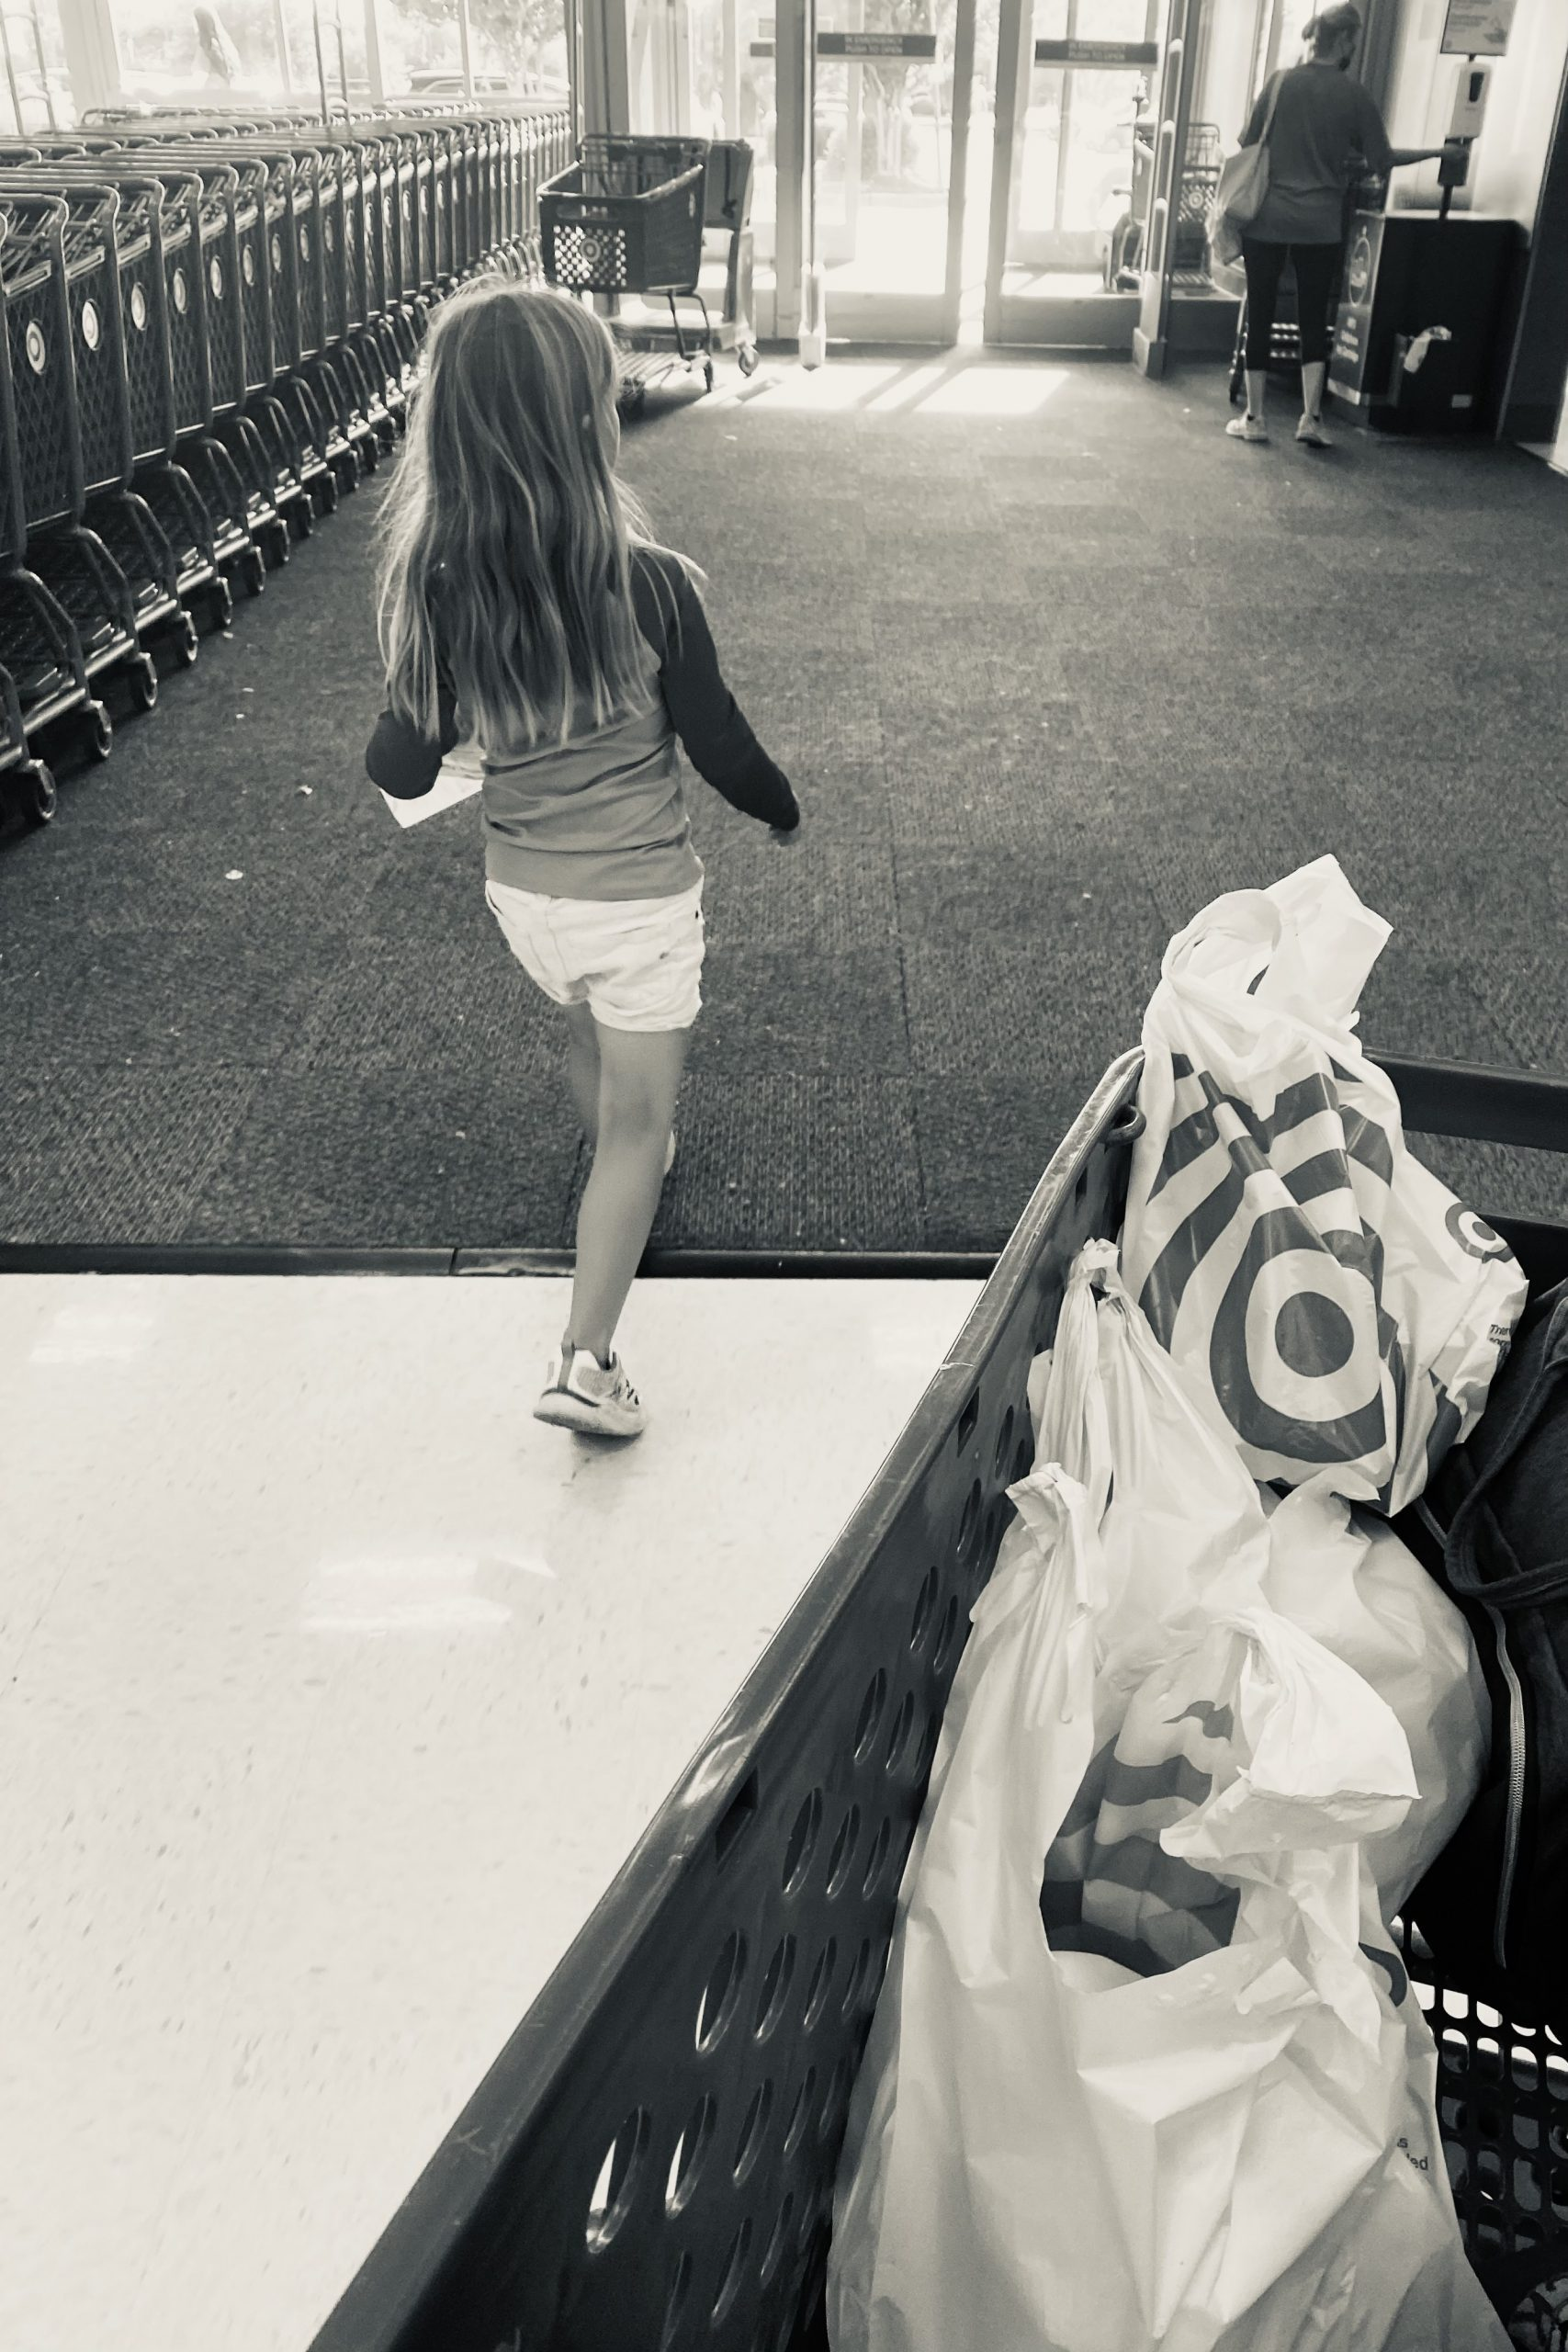 What Happened When My Daughter Stole From Target